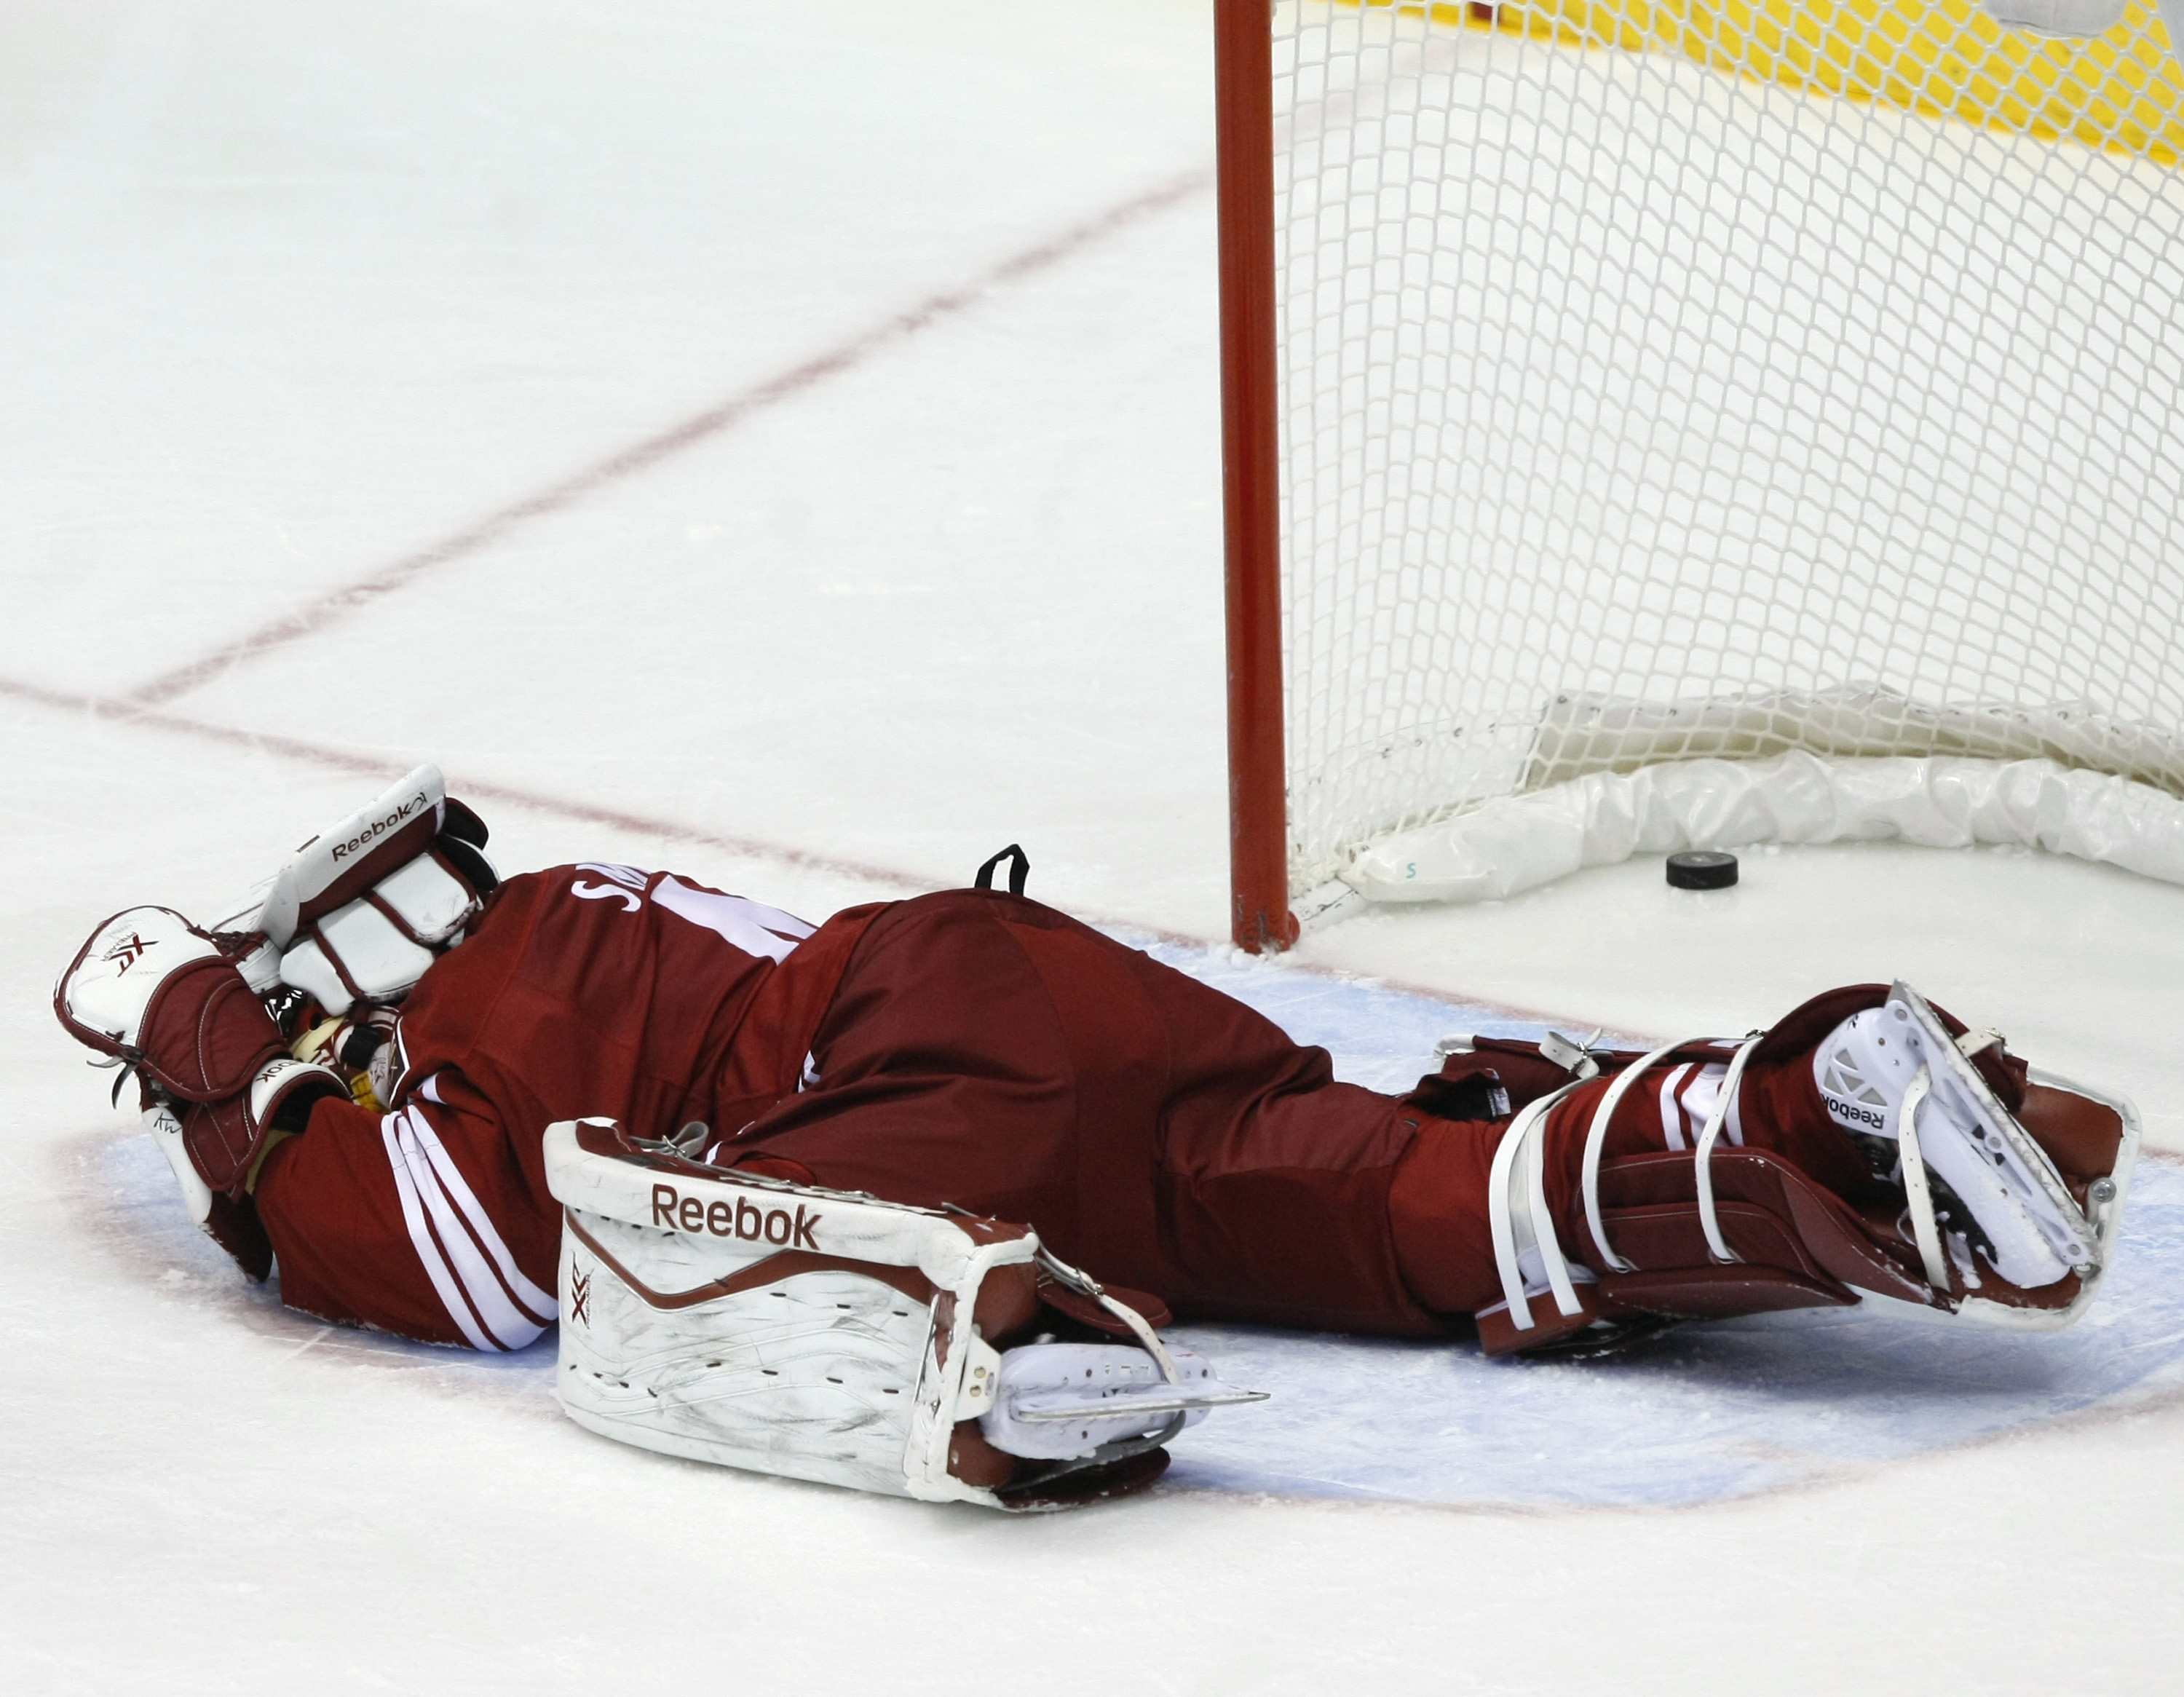 Phoenix Coyotes goalie Mike Smith (41) lies on the ice after getting hit in the second period during an NHL hockey game against the Detroit Red Wings on Saturday, Oct. 19, 2013, in Glendale, Ariz. The goal was disallowed after a review